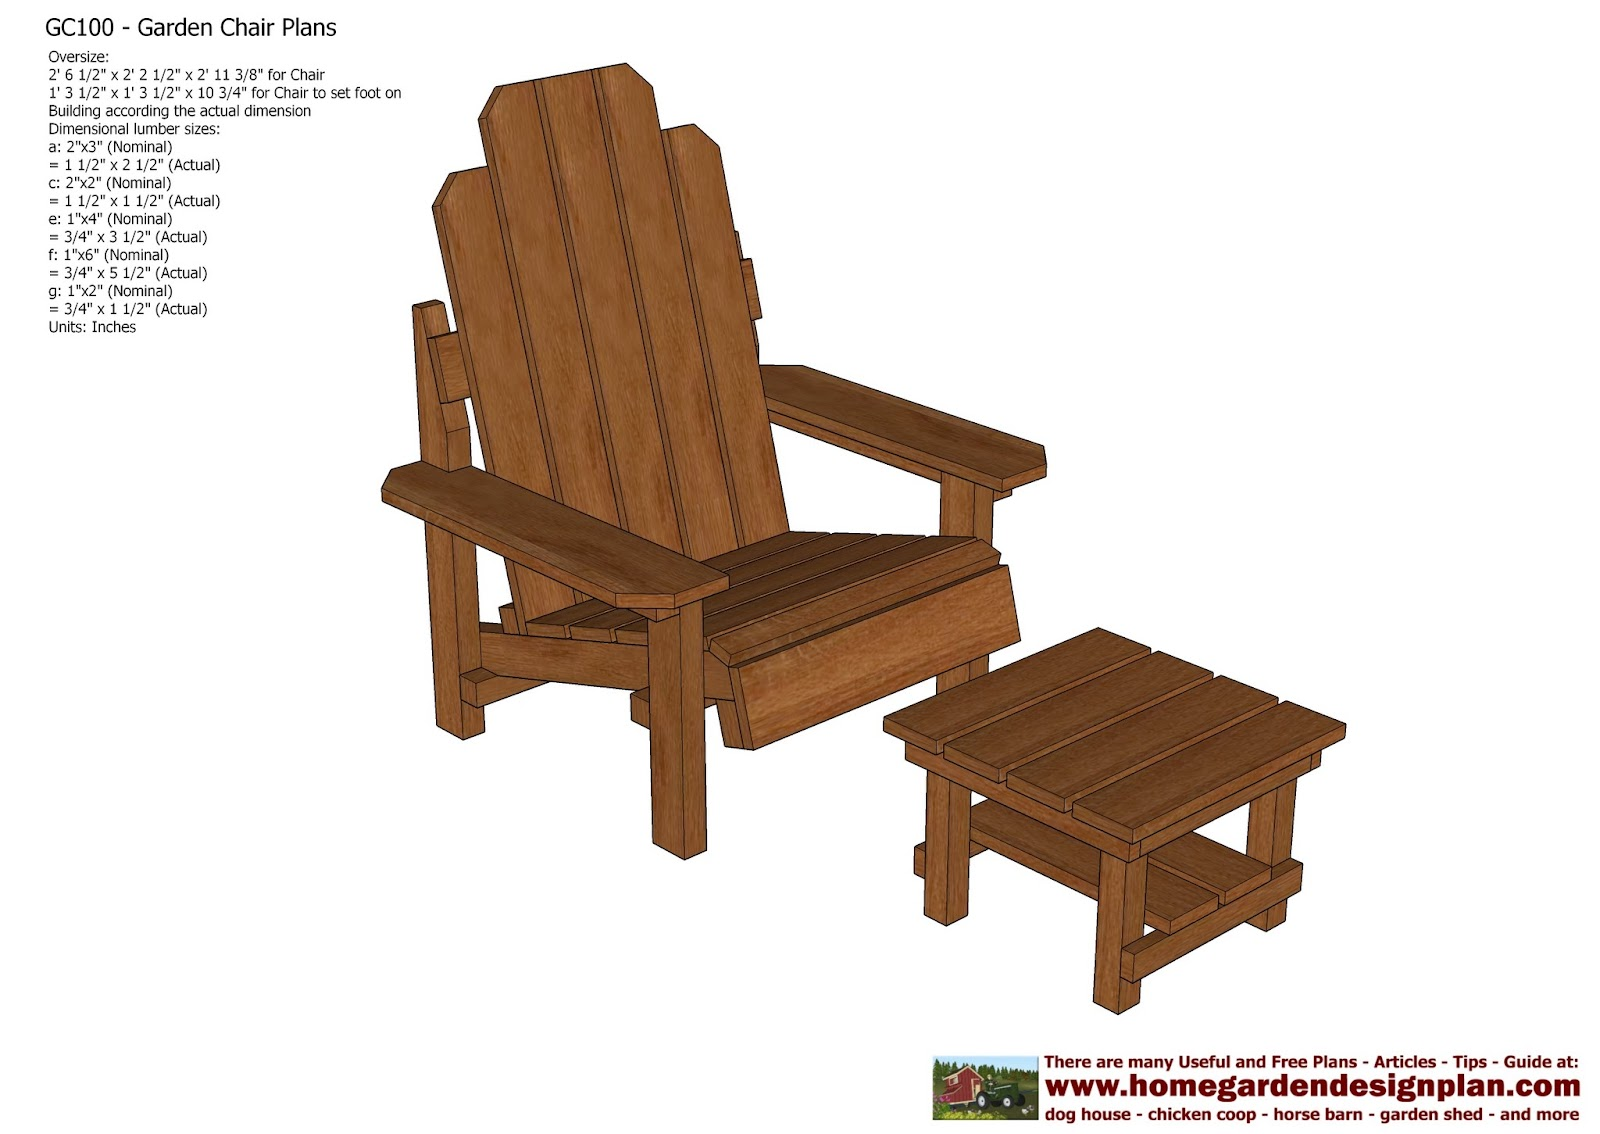 Garden Furniture Plans home garden plans: gc100 - garden chair plans - out door furniture